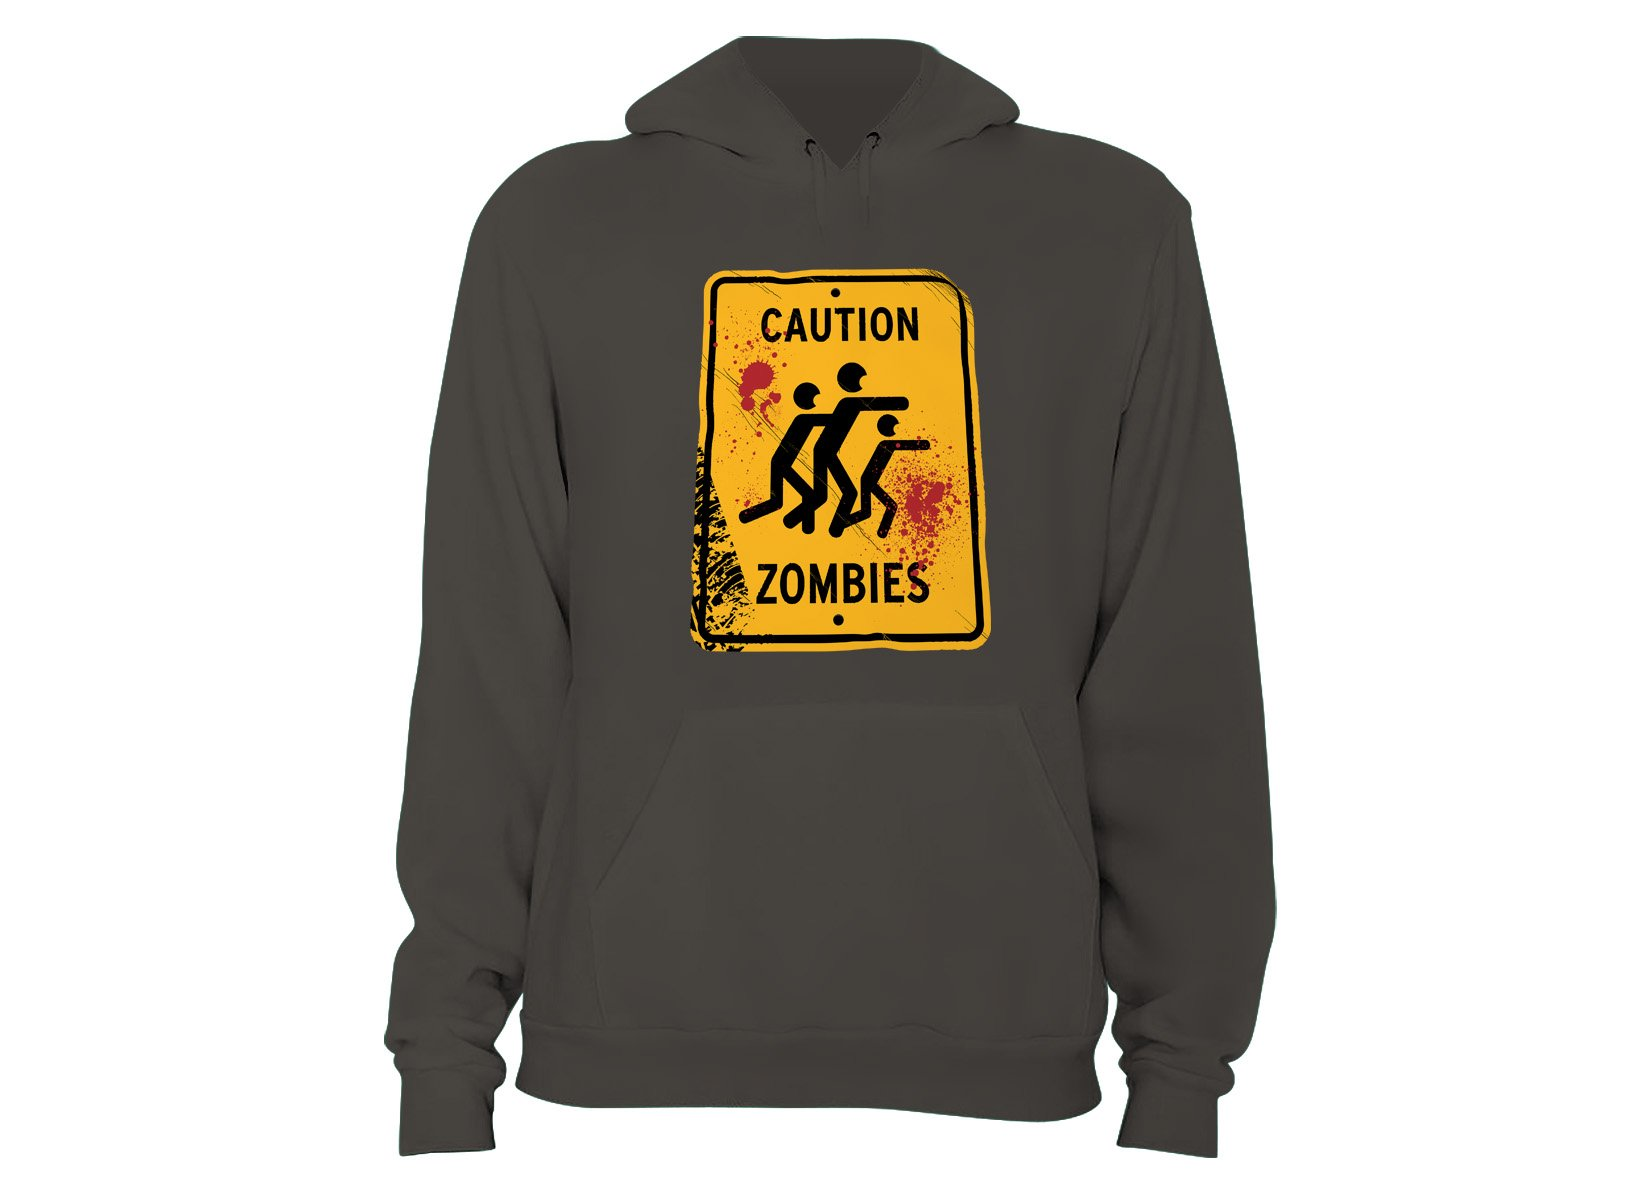 Caution Zombies on Hoodie